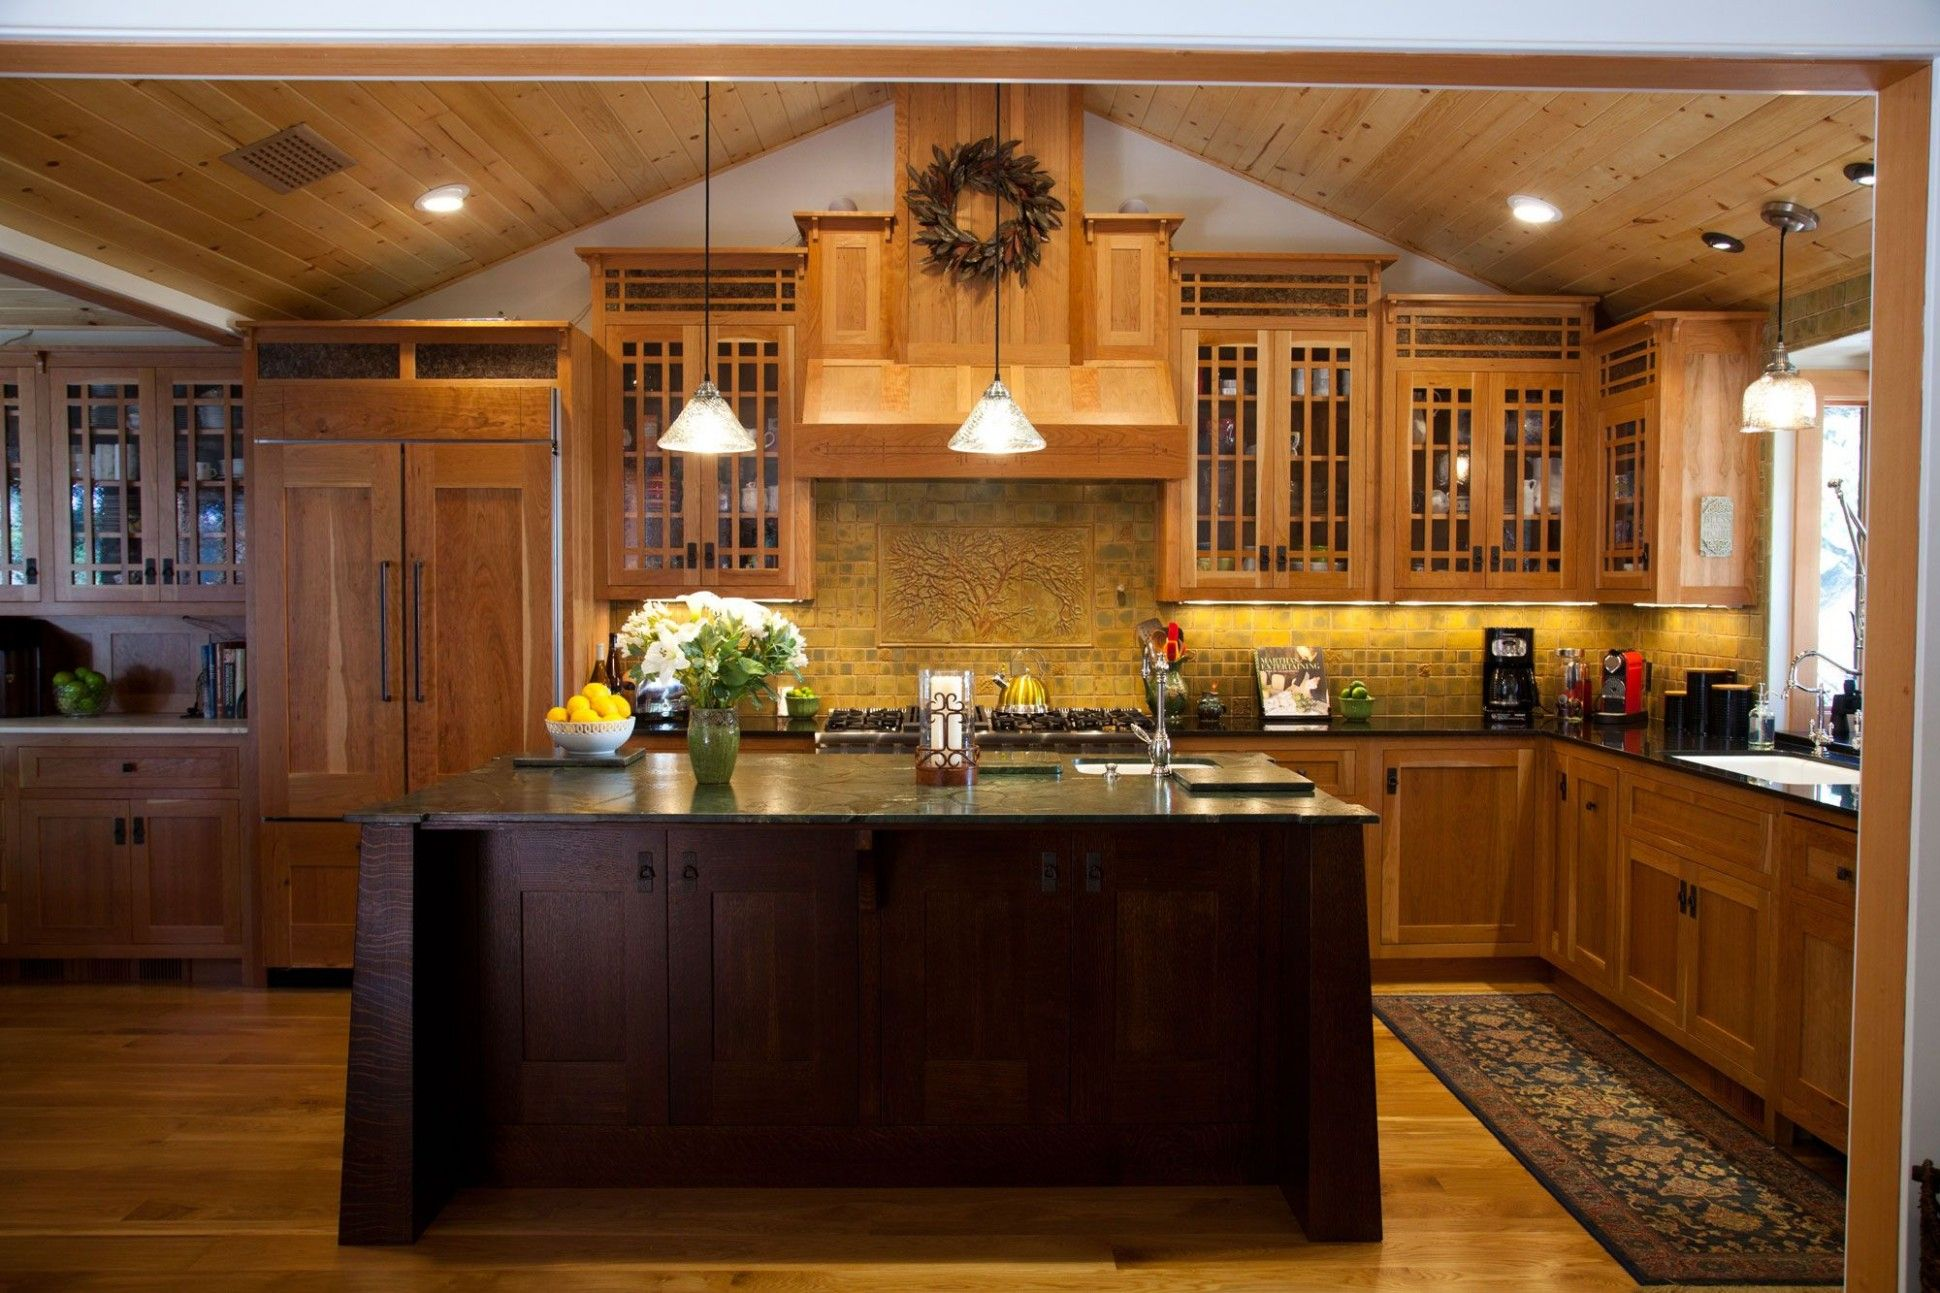 10 Photo Kitchen Craft Cabinets Reviews In 2020 Kitchen Cabinet Styles Mission Style Kitchen Cabinets Kitchen Craft Cabinets